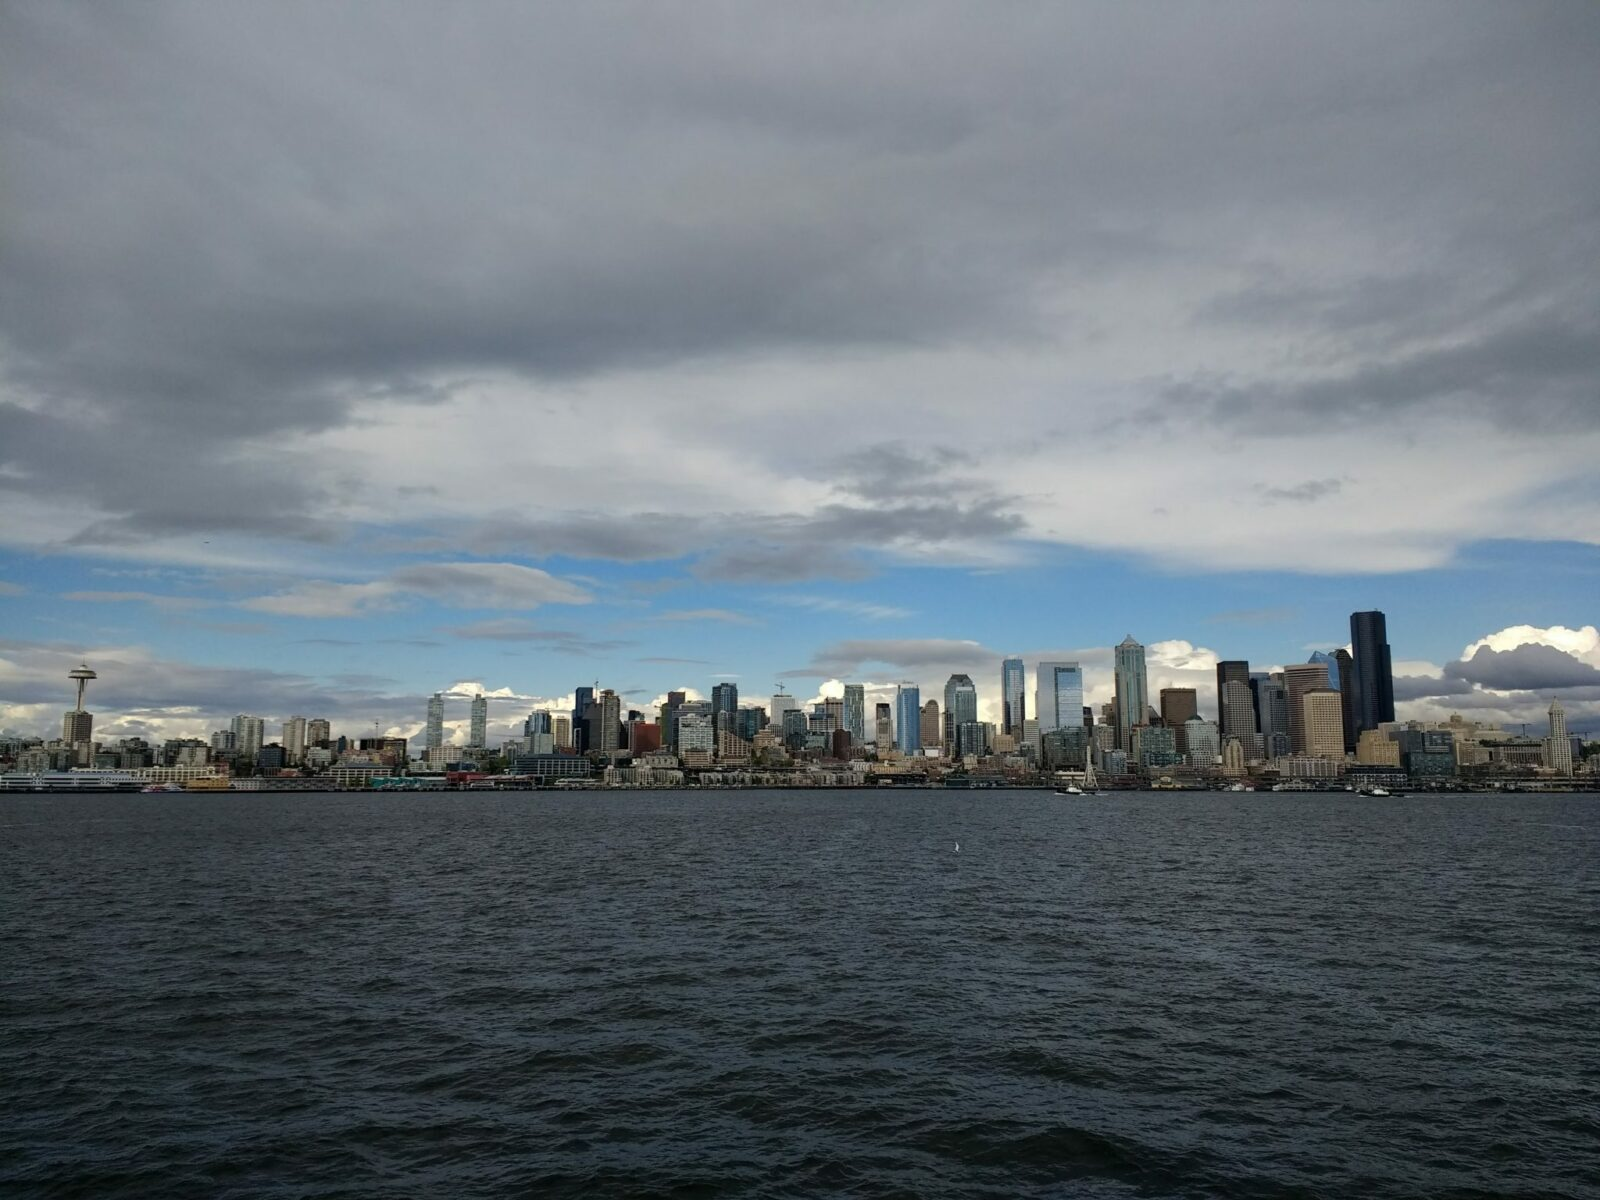 water and a city skyline against a cloudy sky